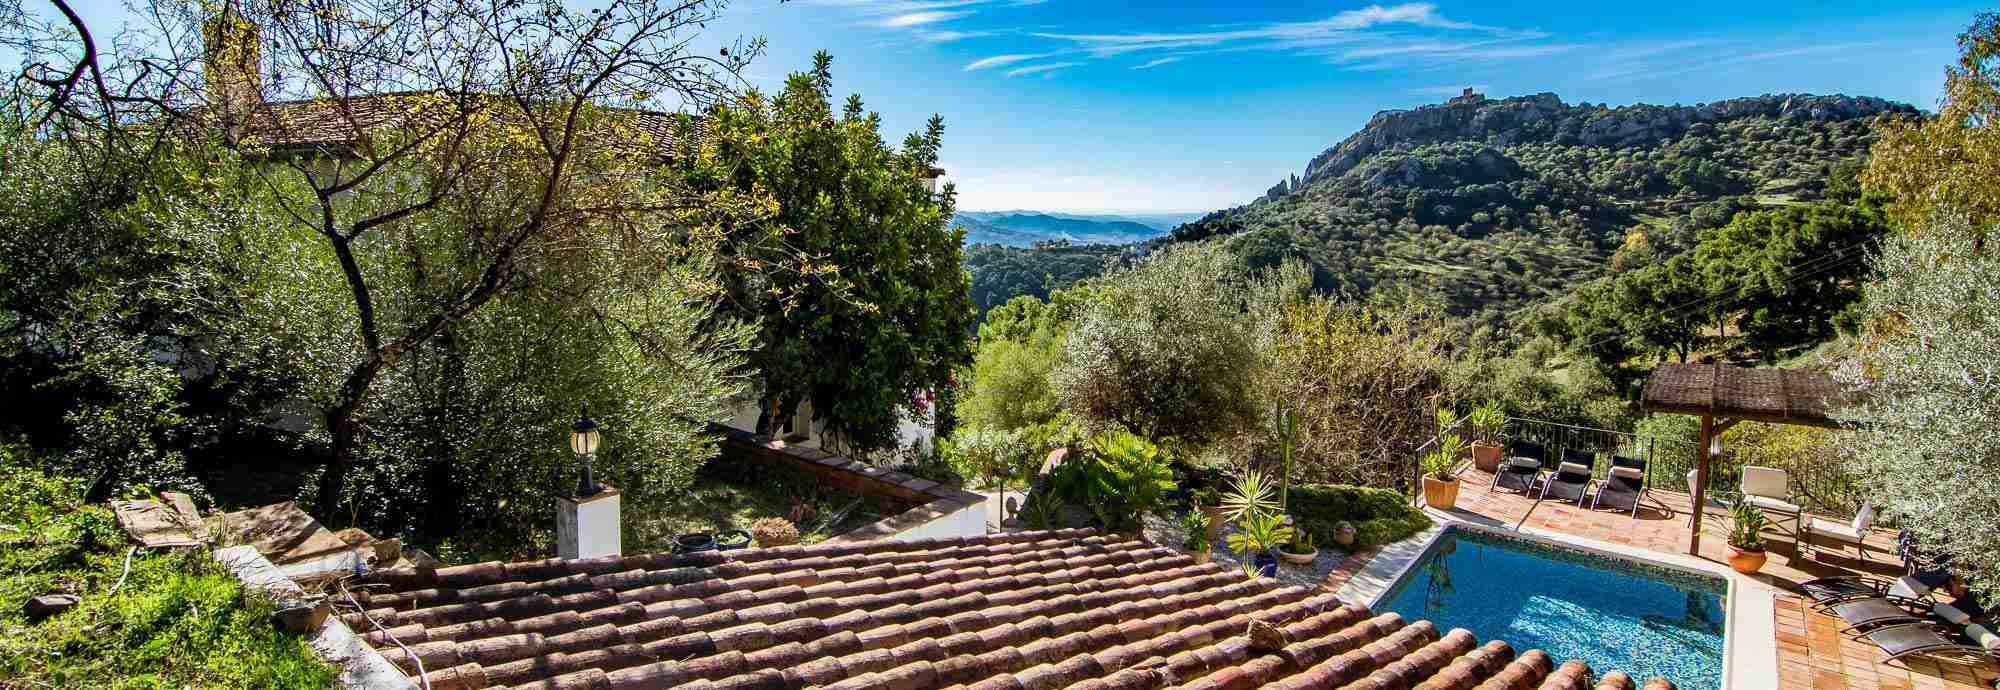 Pet friendly Holiday  Villas in Spain